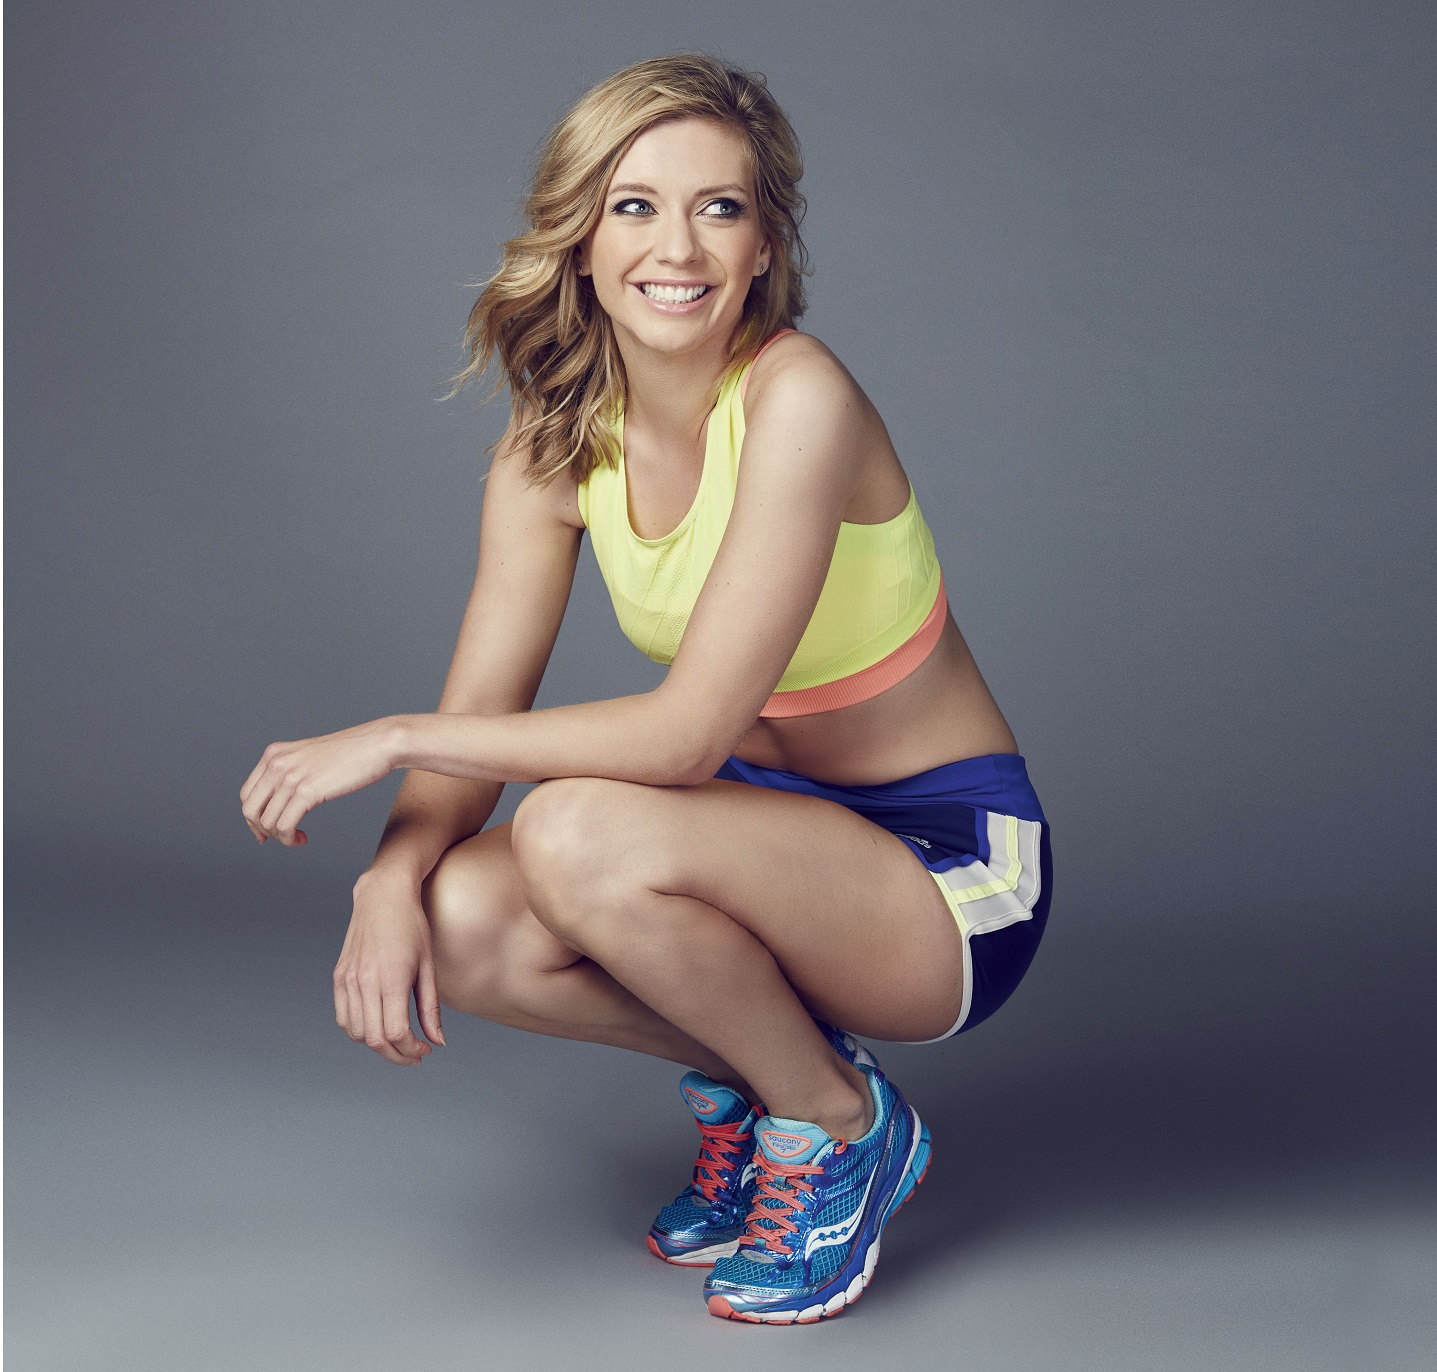 rachel-riley-hot-stills